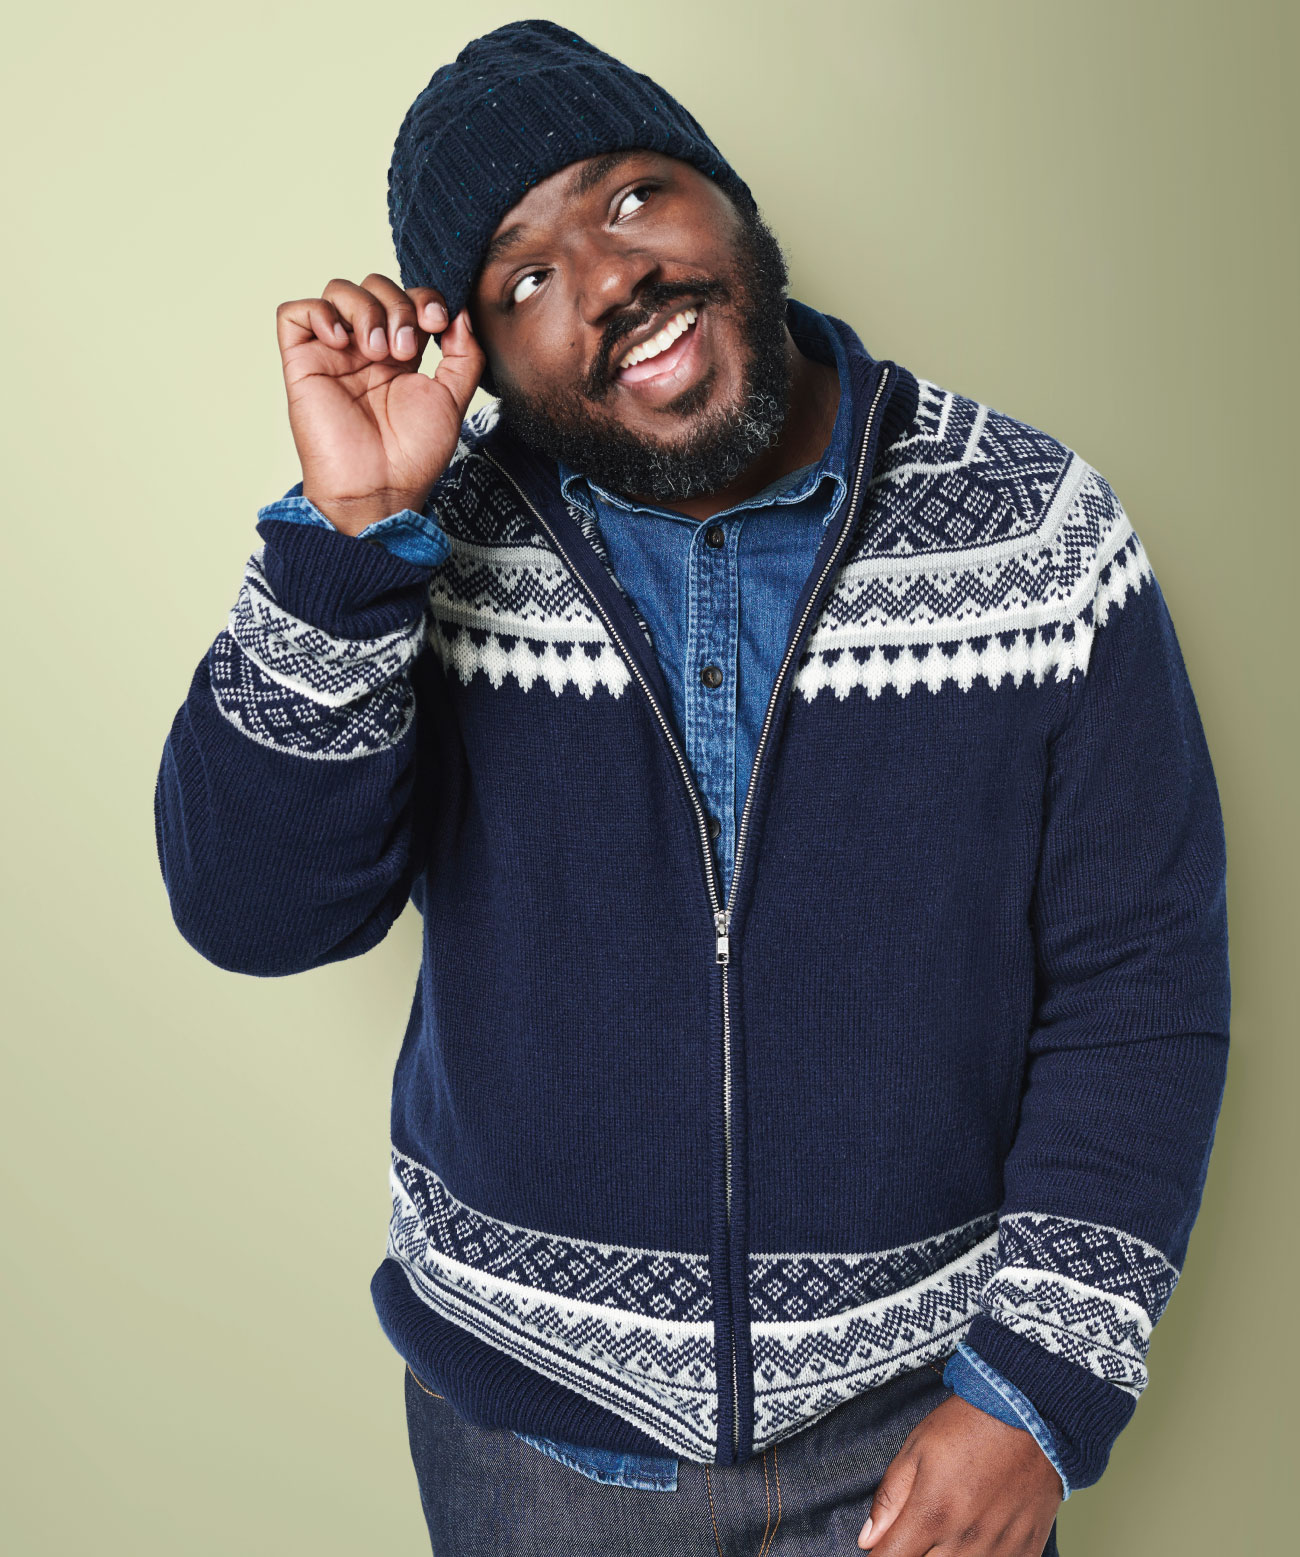 black man with beard wearing navy blue hat, blue zip-up sweater and denim shirt